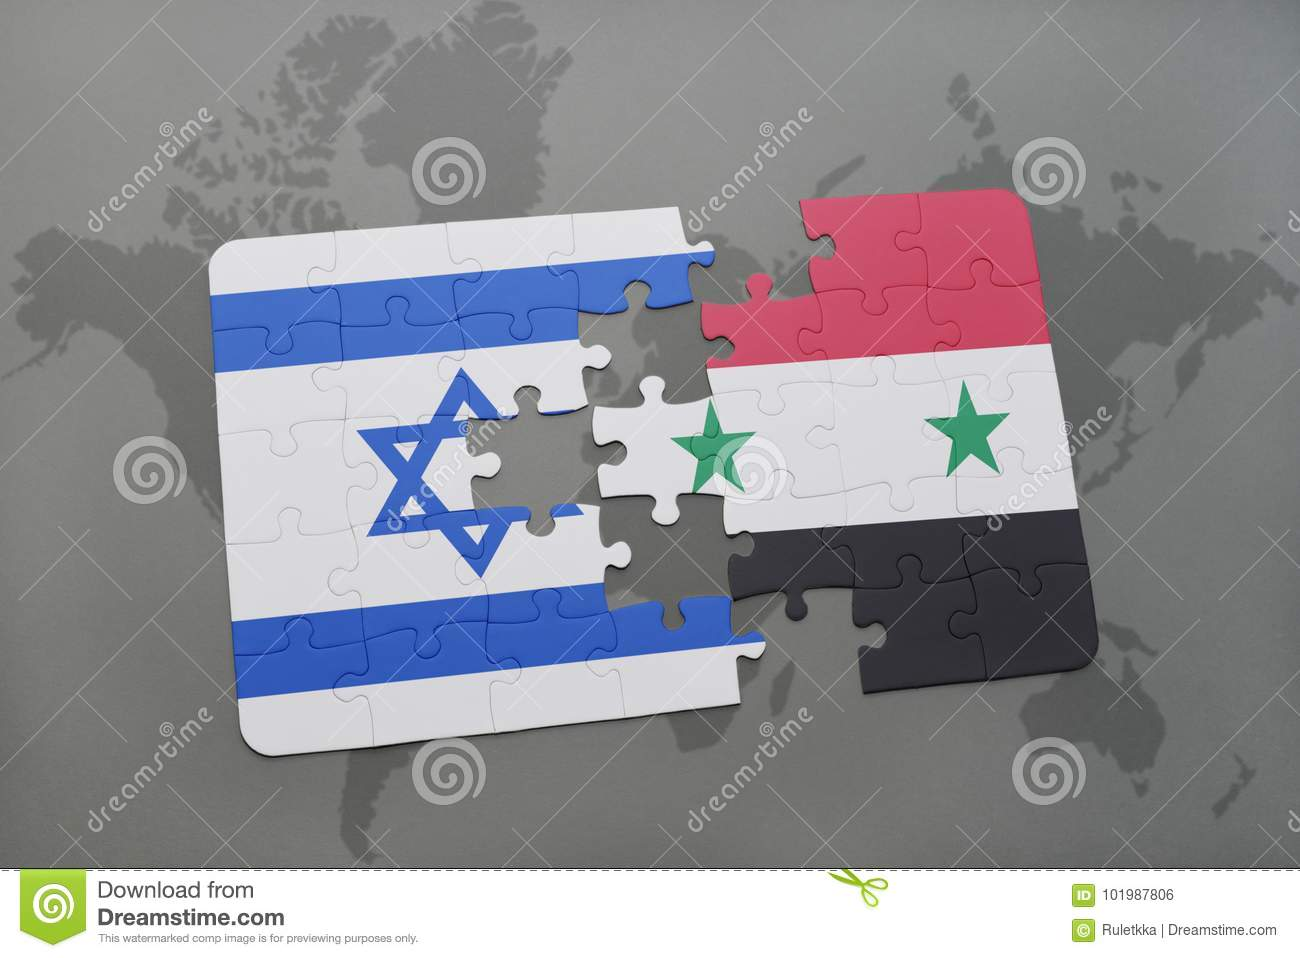 Puzzle with the national flag of israel and syria on a world map download puzzle with the national flag of israel and syria on a world map background gumiabroncs Gallery